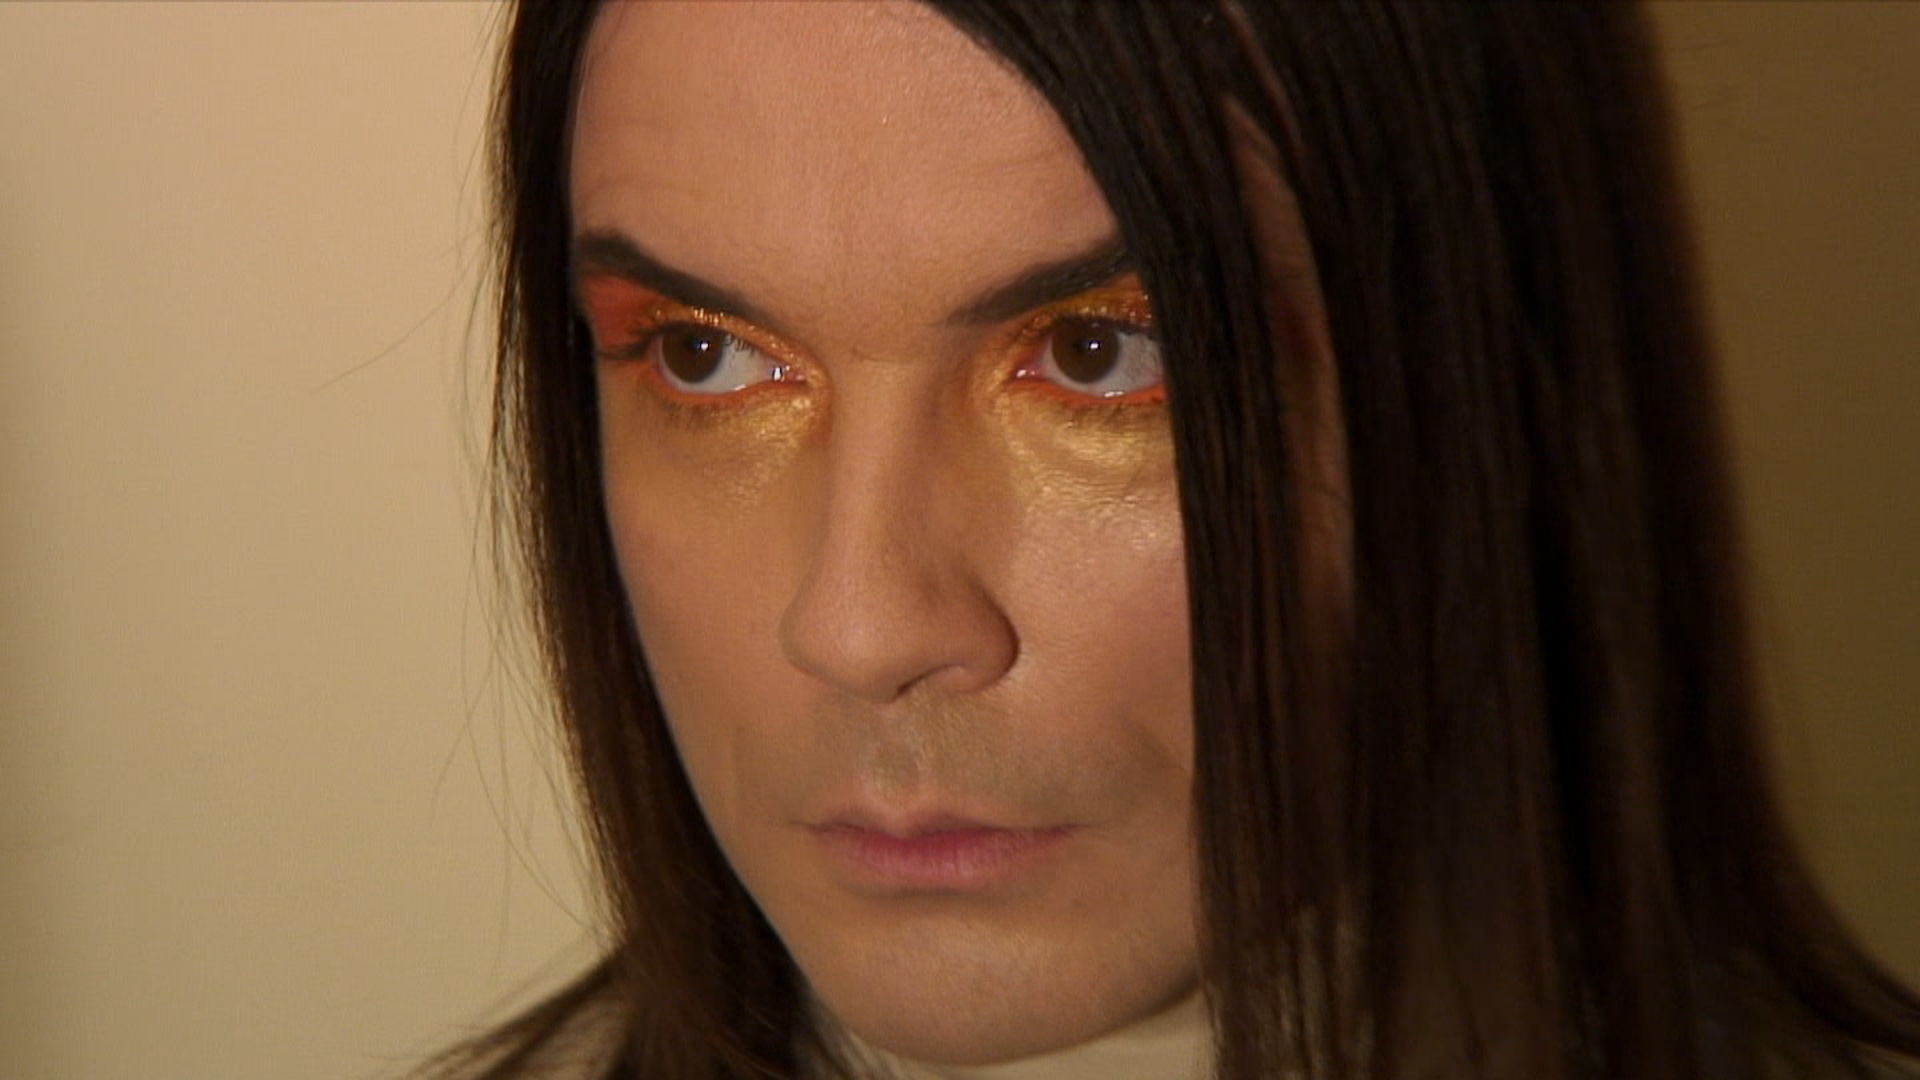 Rohan Quine, 'The Imagination Thief' - film 'JAYMI 115', still 9